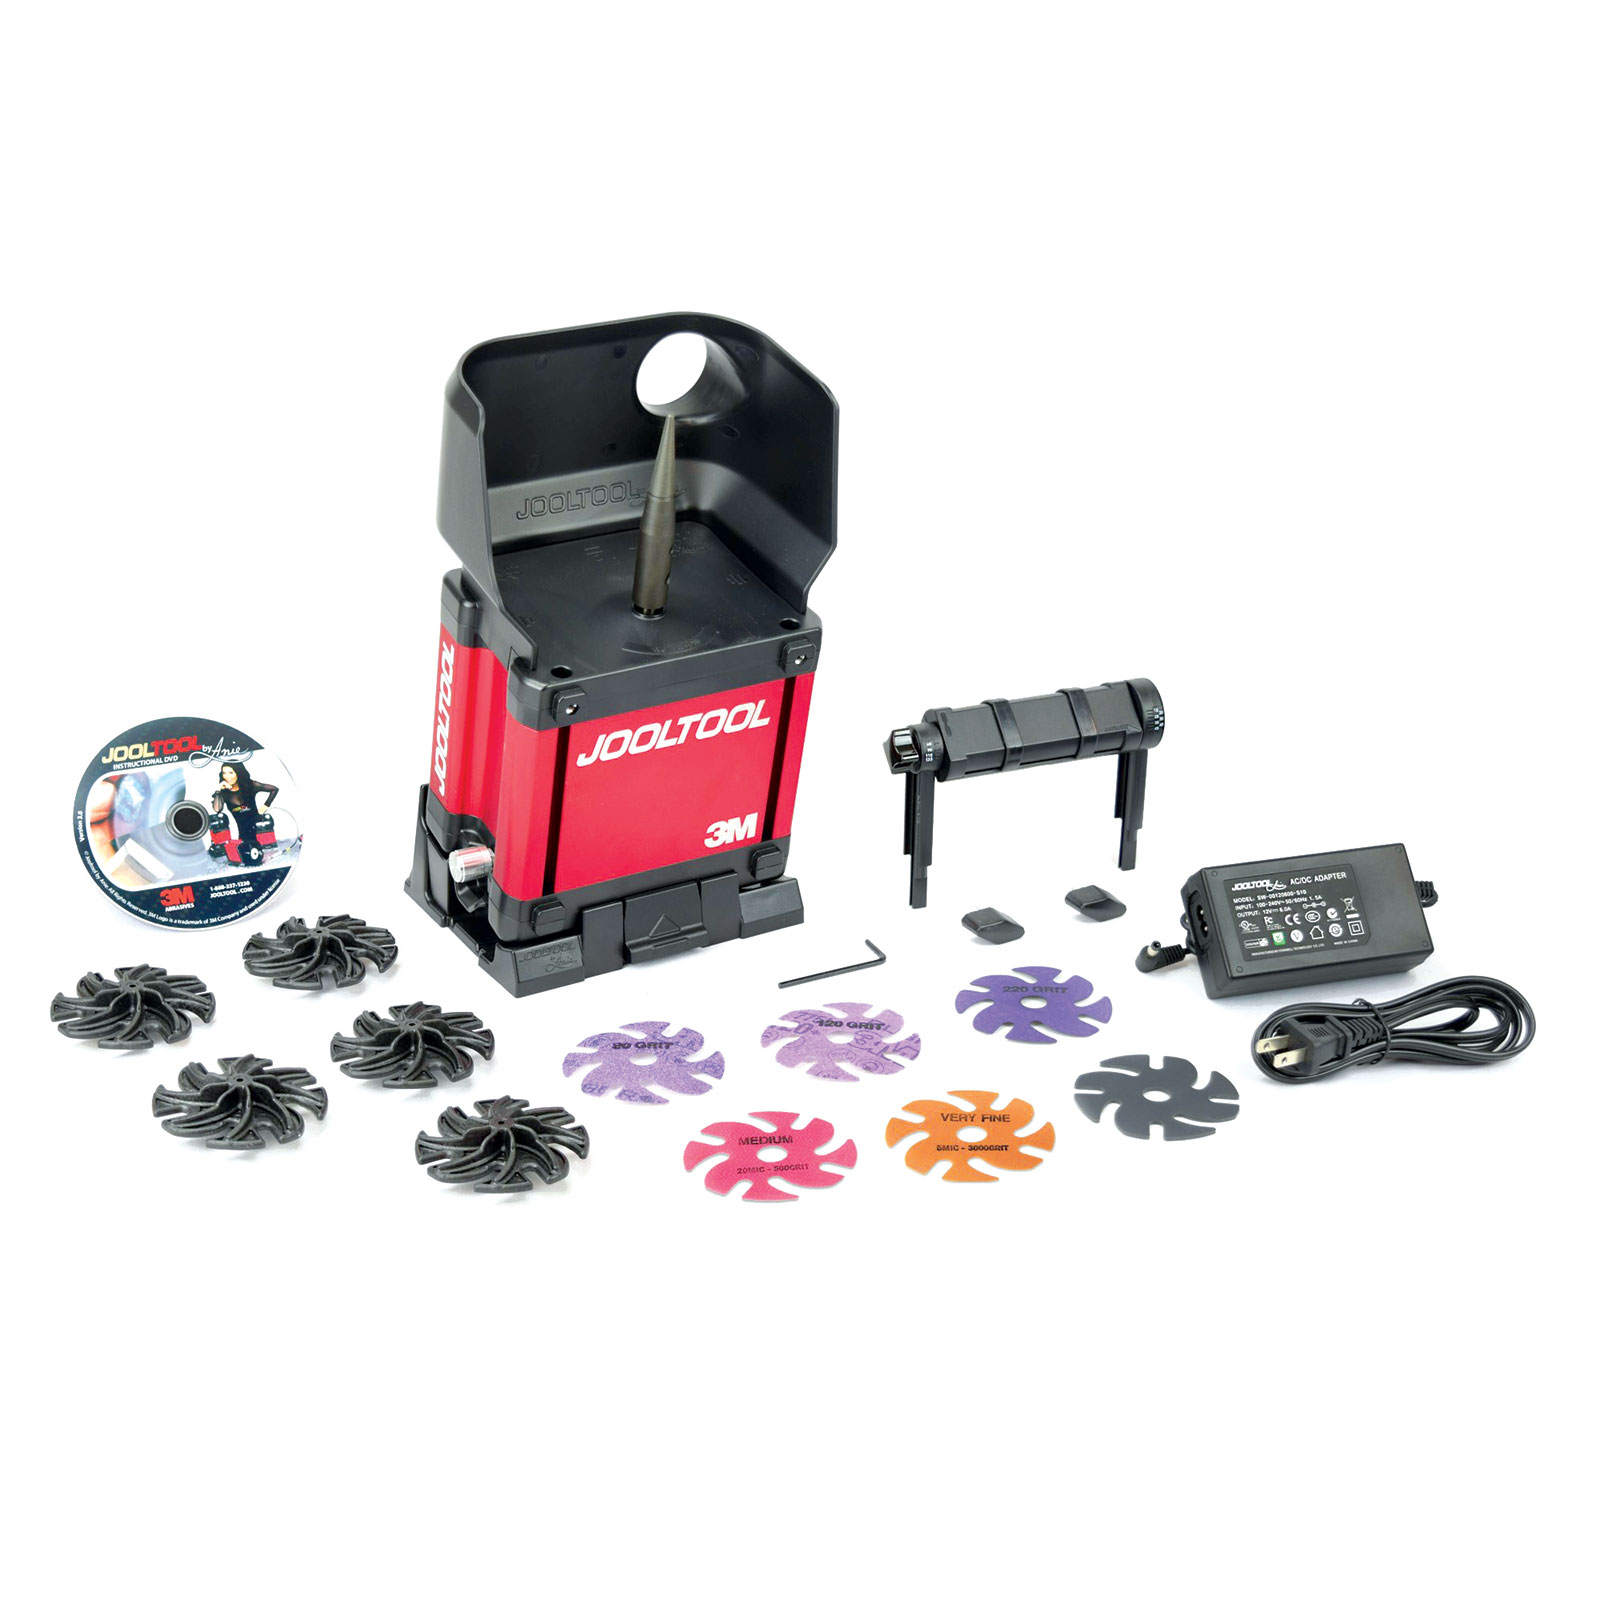 JOOLTOOL Sharpening System2